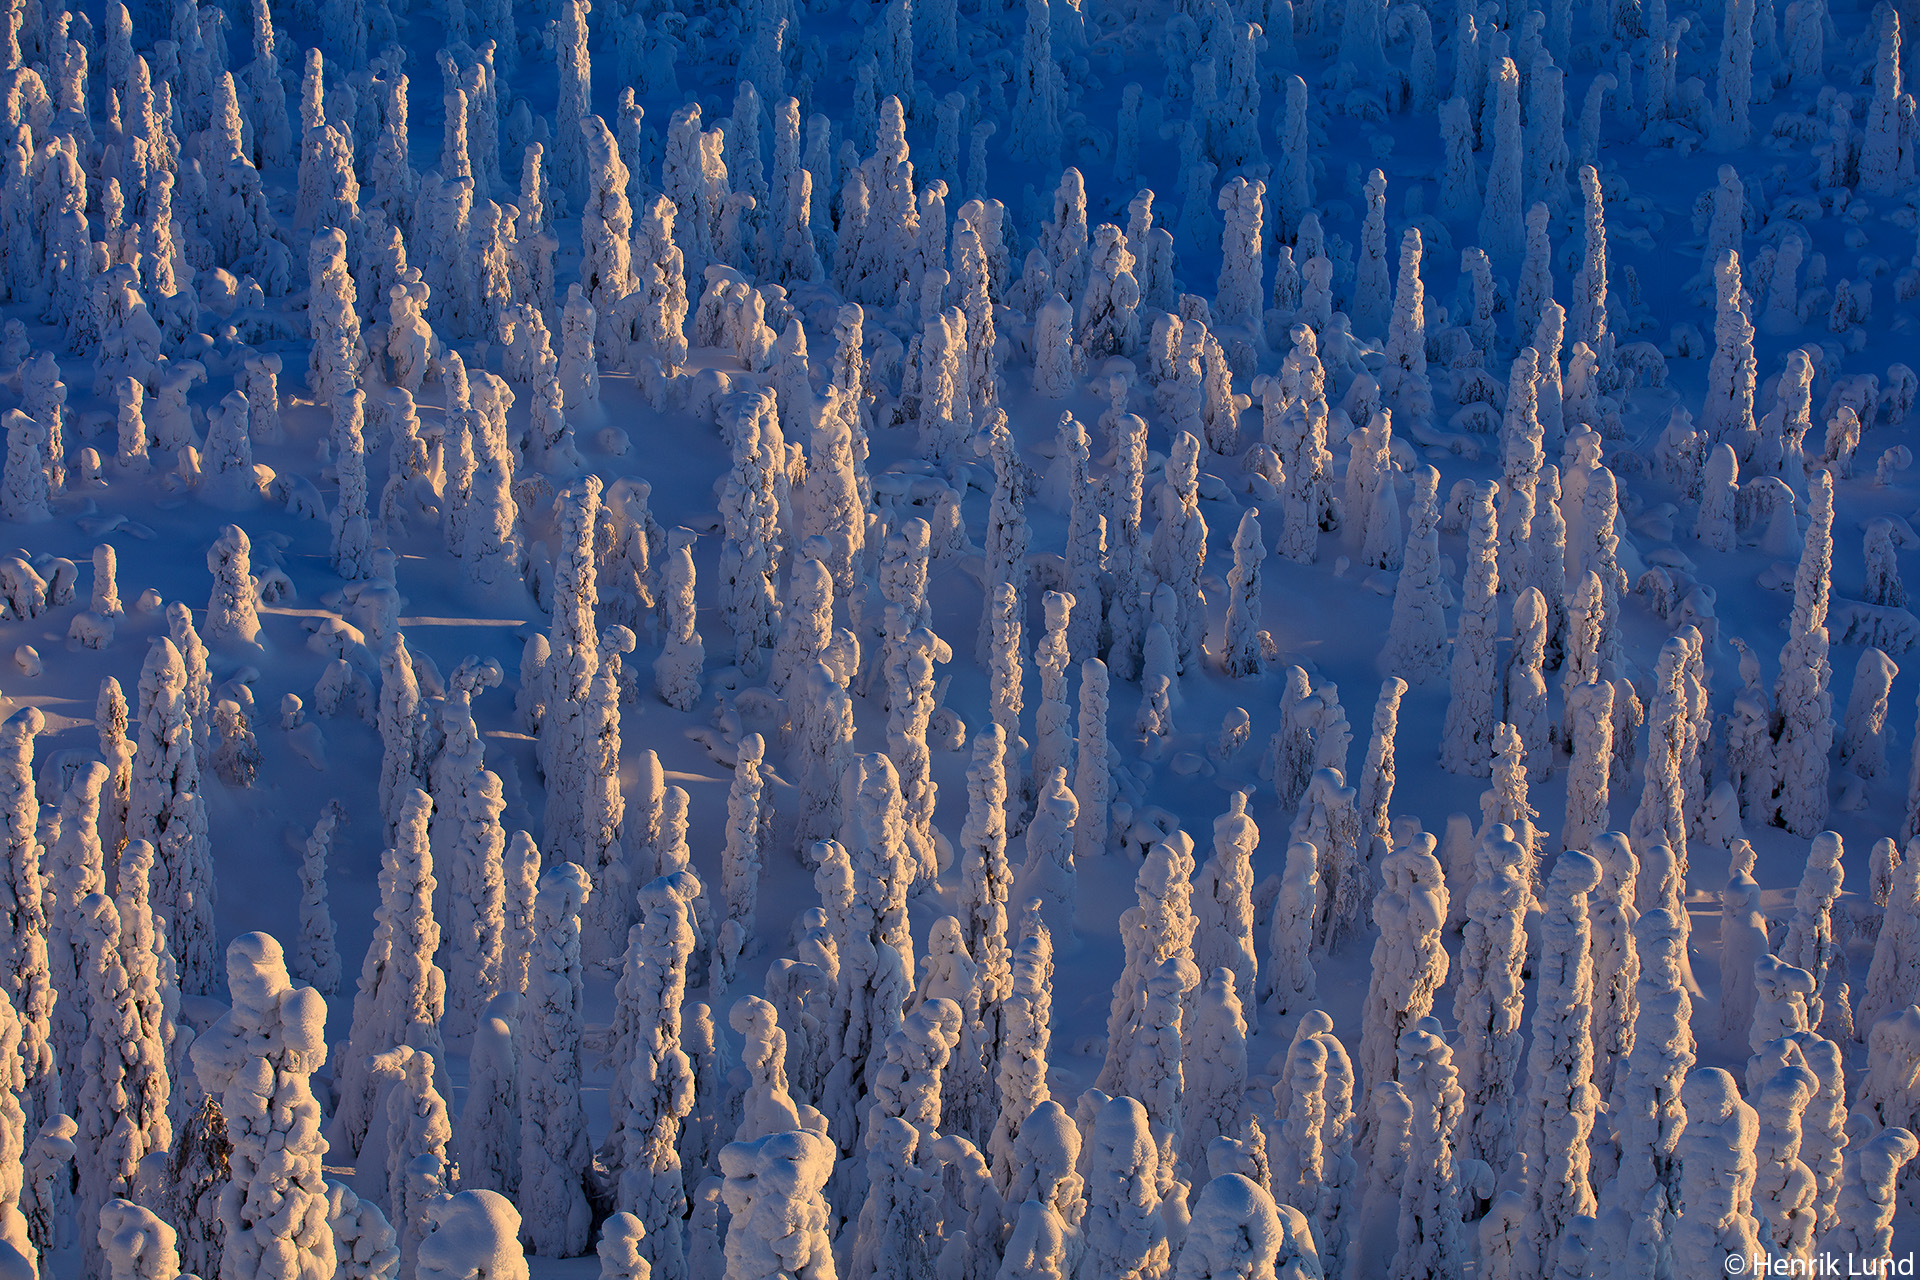 Snowcovered trees viewed from the top of mountain Valtavaara in Kuusamo, Finland. February 2018.